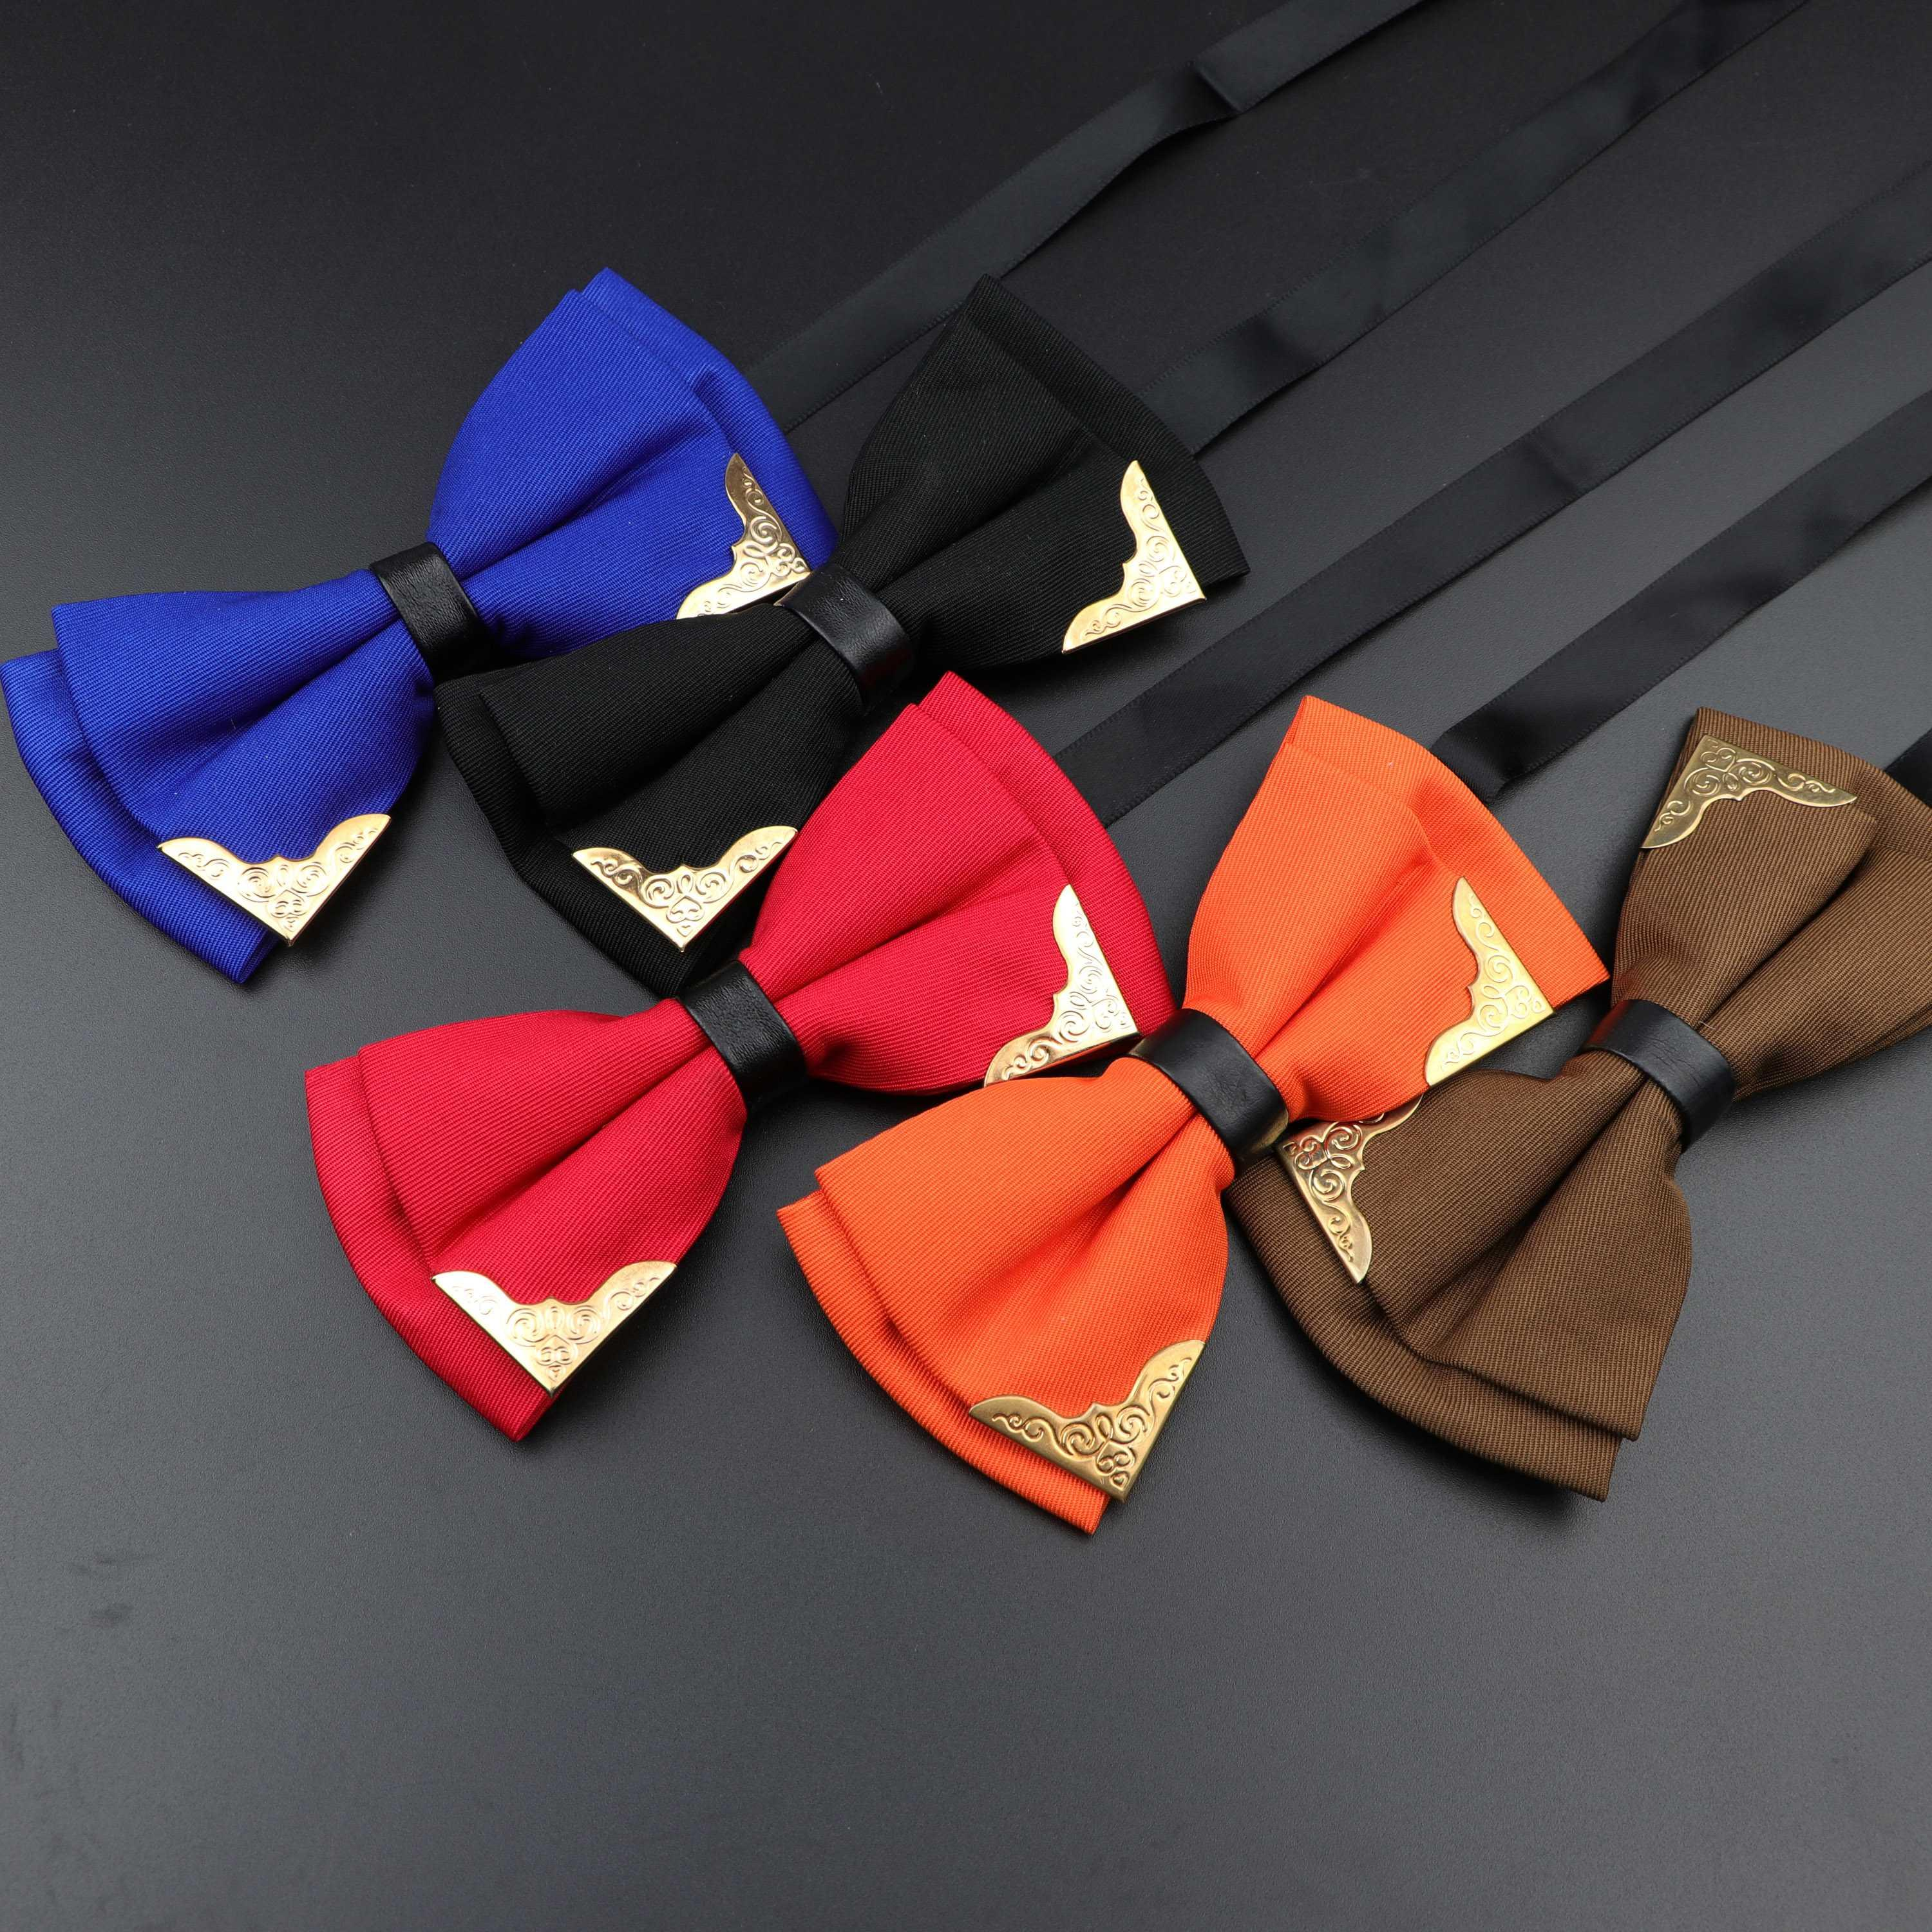 No Brand Mens Polyester Bow Tie Double-deck Orange Pink and Black Pack Of 2